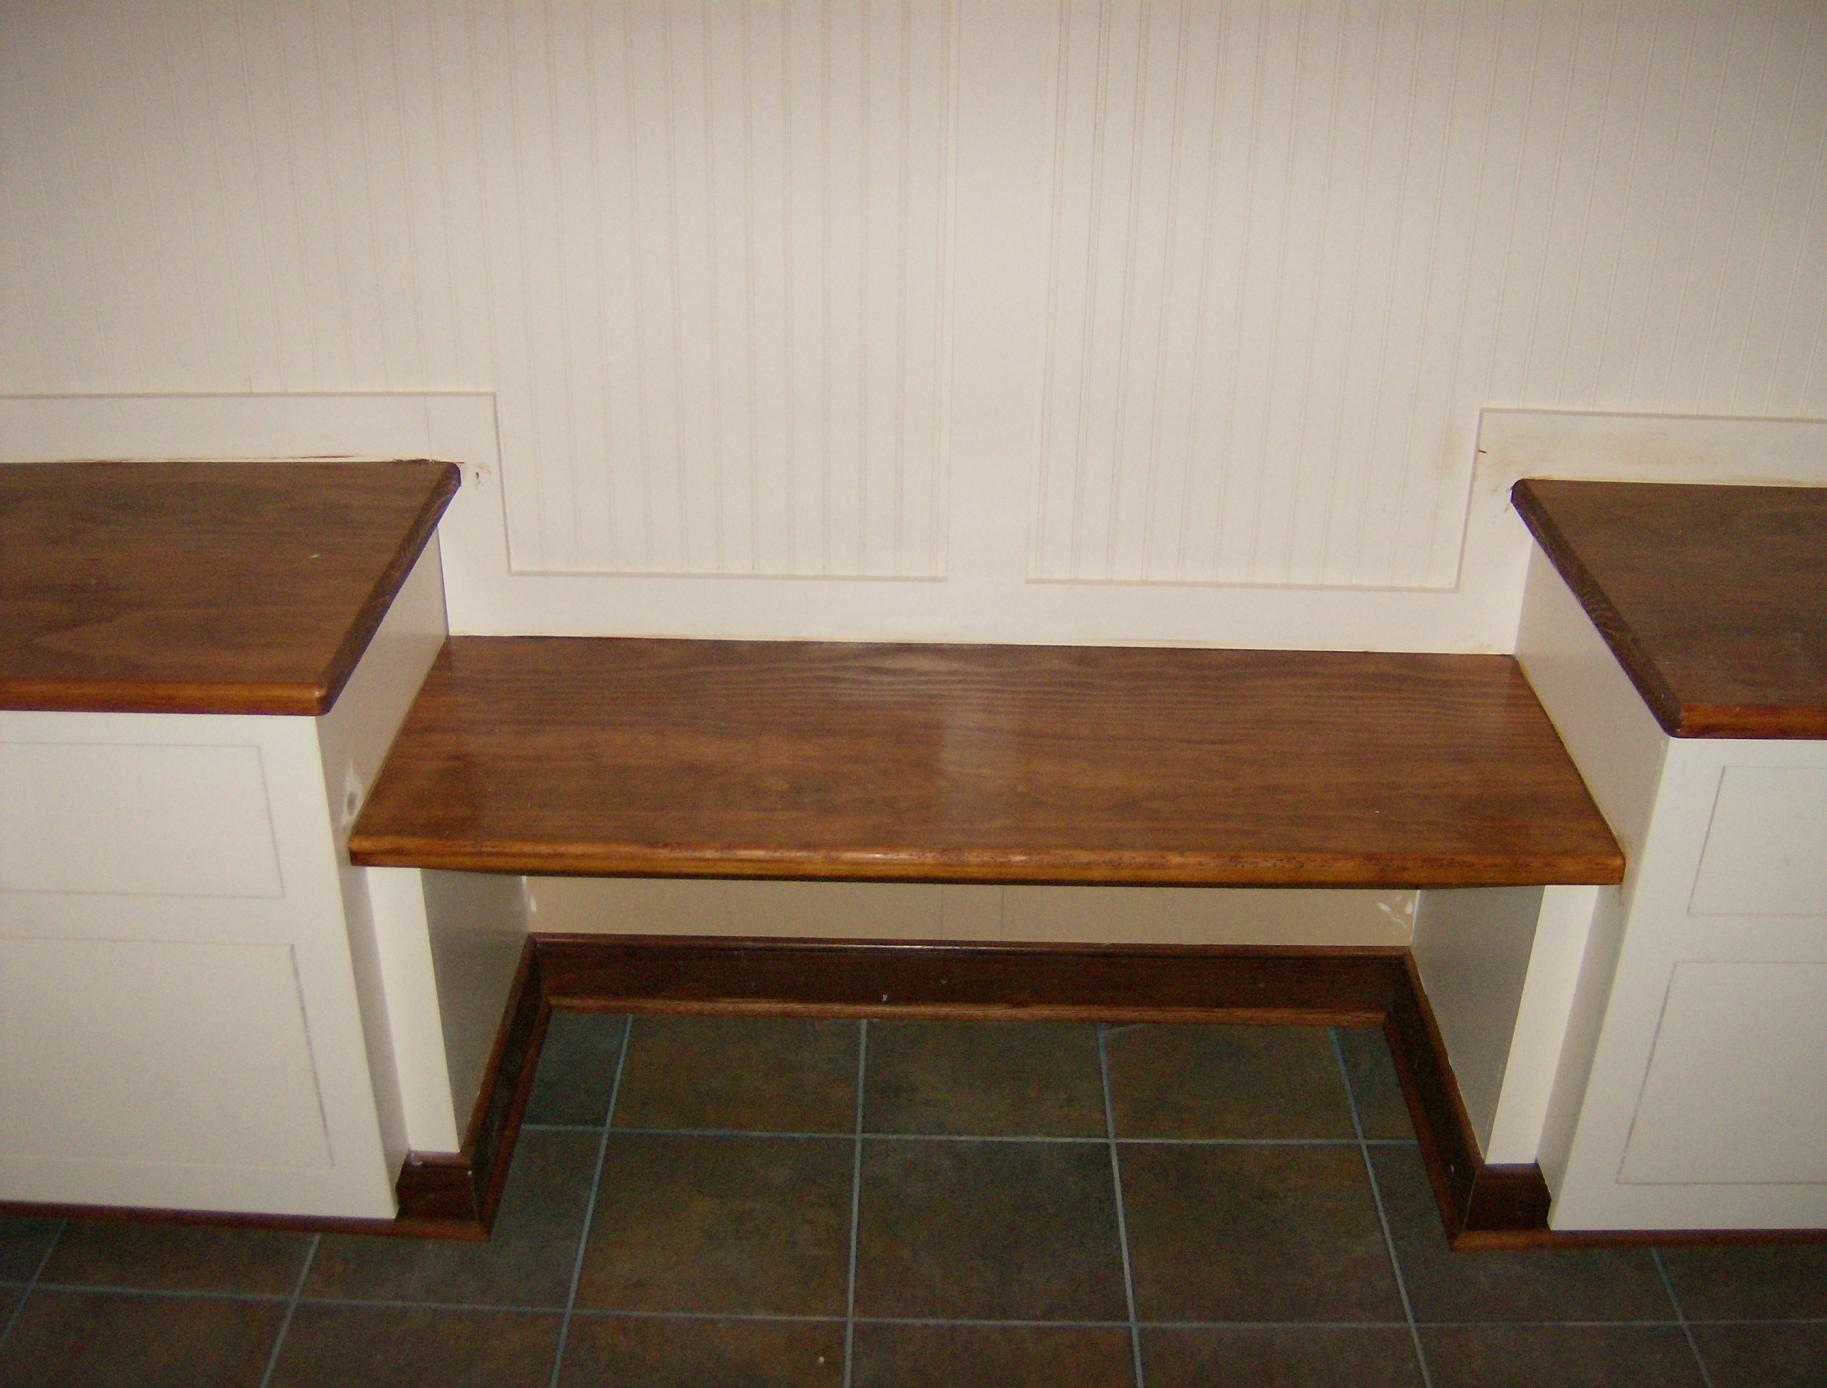 Built In Storage Bench Plans http://diananet.net/lujan-how-is-the-math ...